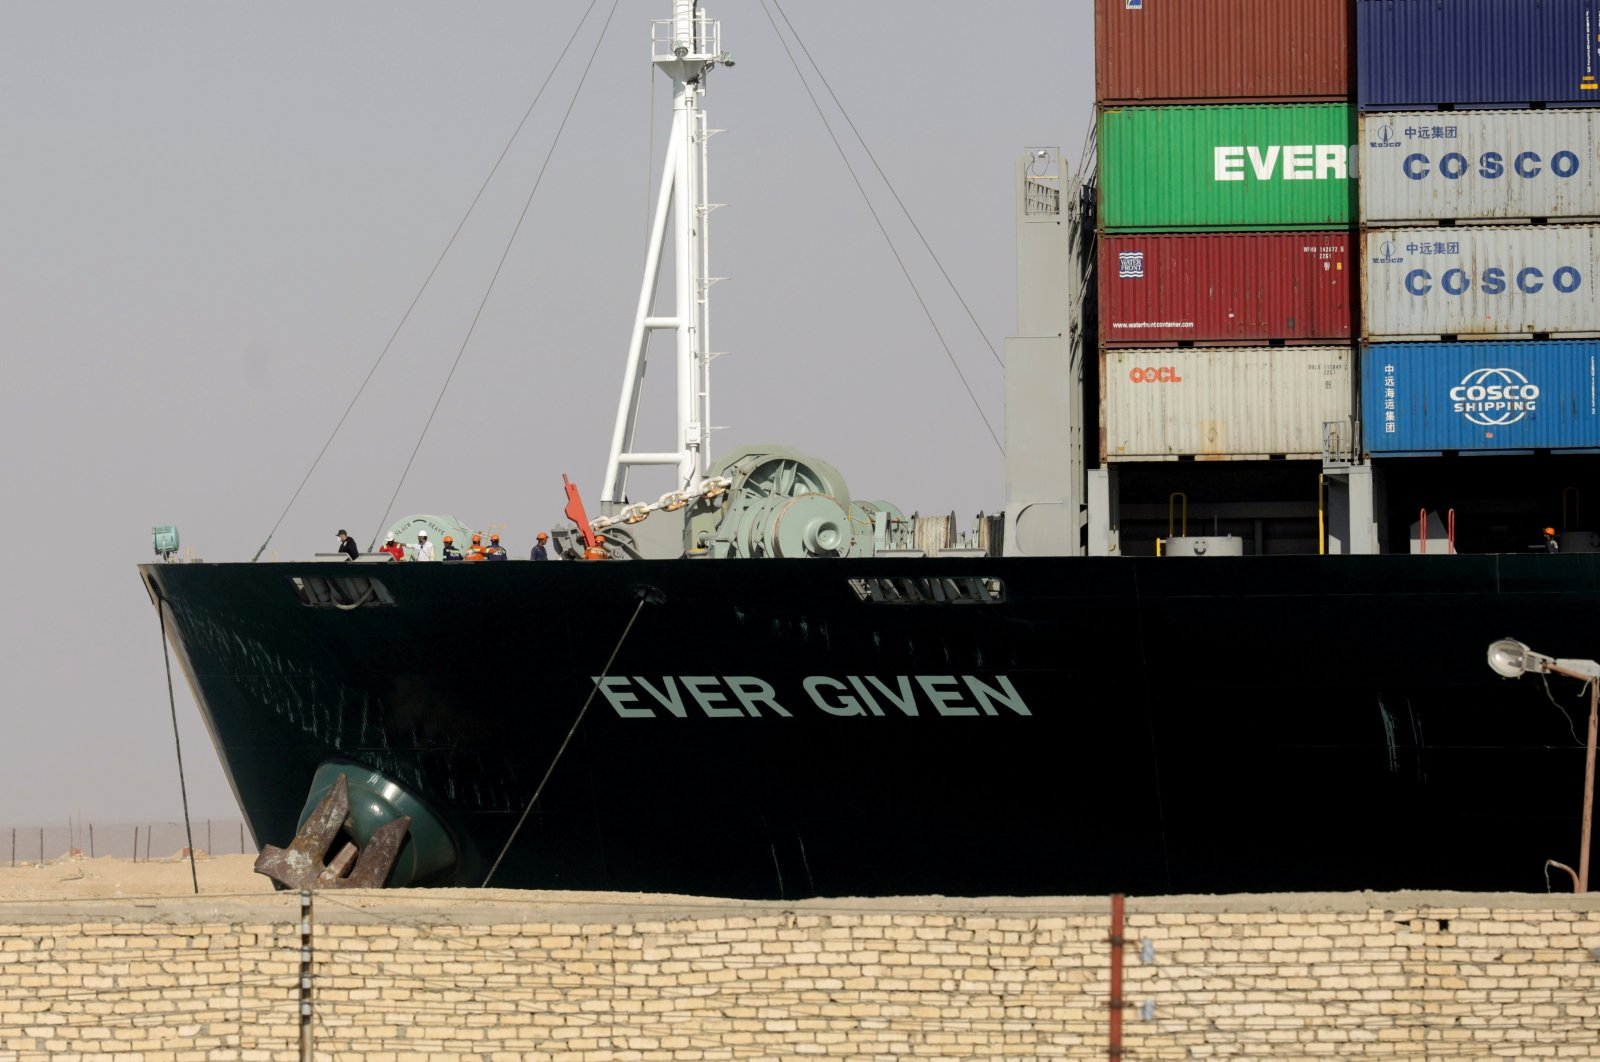 Ever Given, one of the world's largest container ships, is seen after it was fully floated in the Suez Canal, Egypt, March 29, 2021. (REUTERS / Mohamed Abd El Ghany)